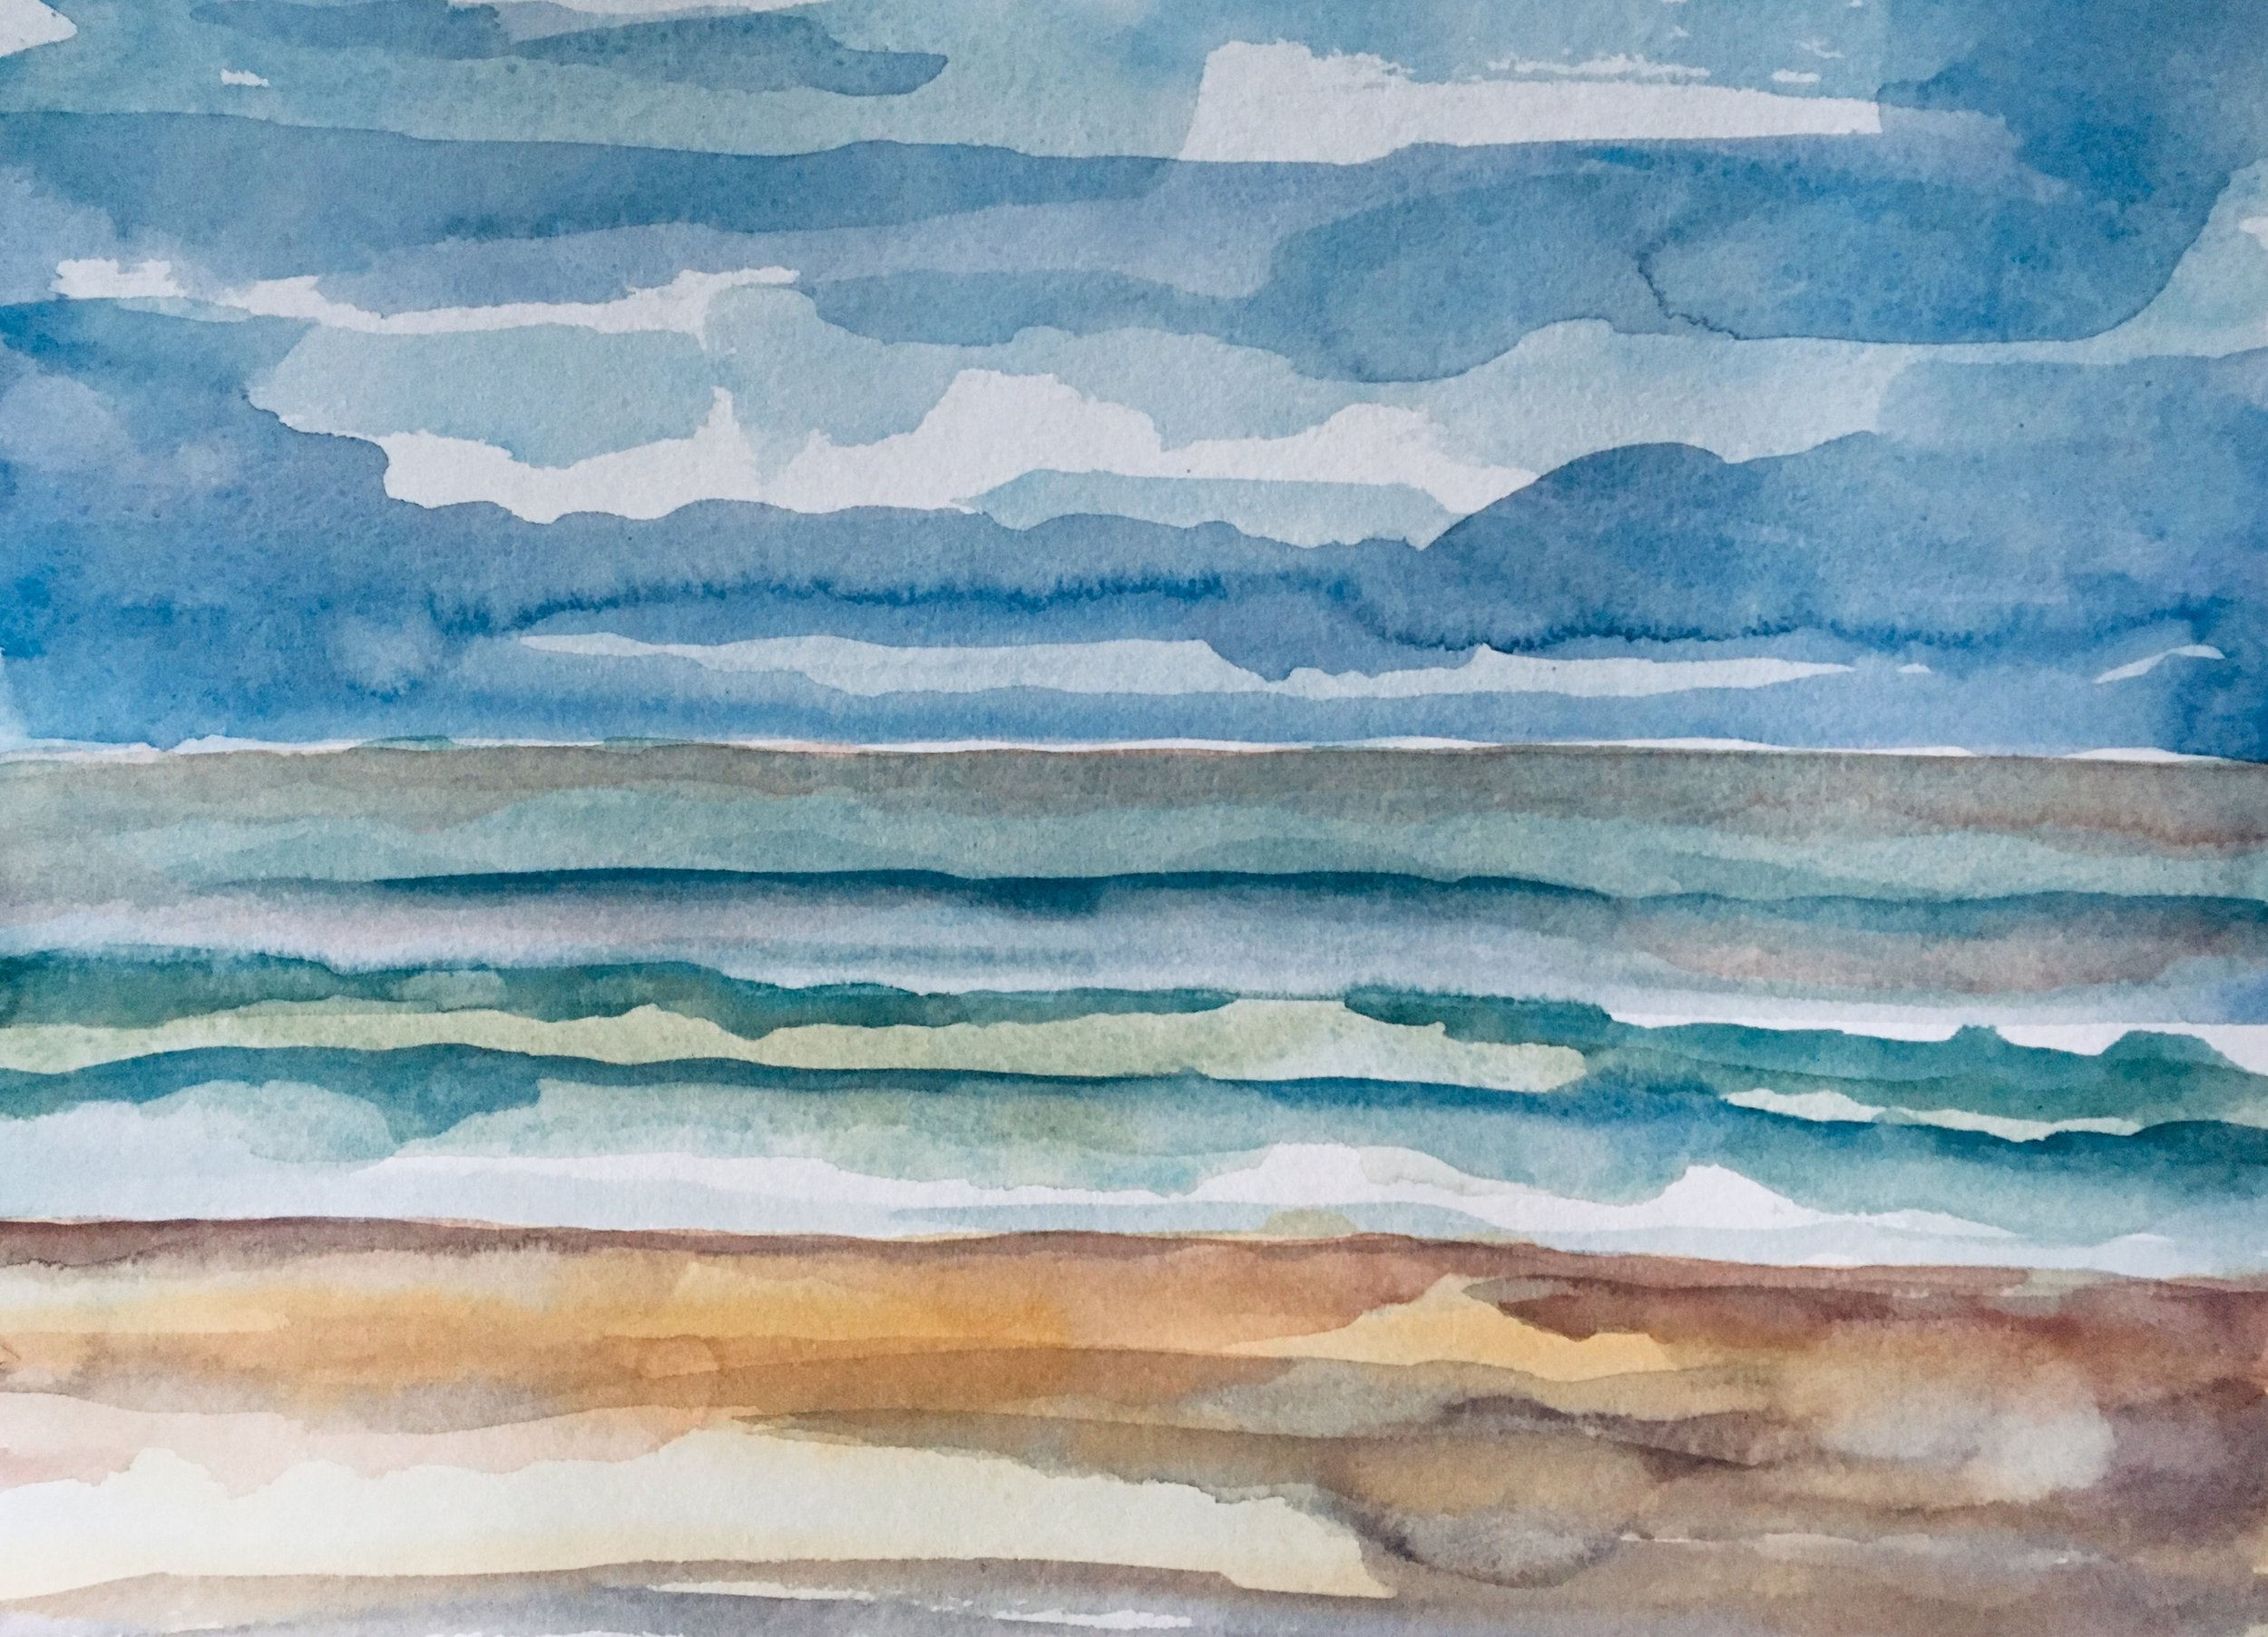 "Beach Water Sky - Emerald Isle, NC before Dorian. 11"" x 15"" Watercolor on Paper 1 September 2019"